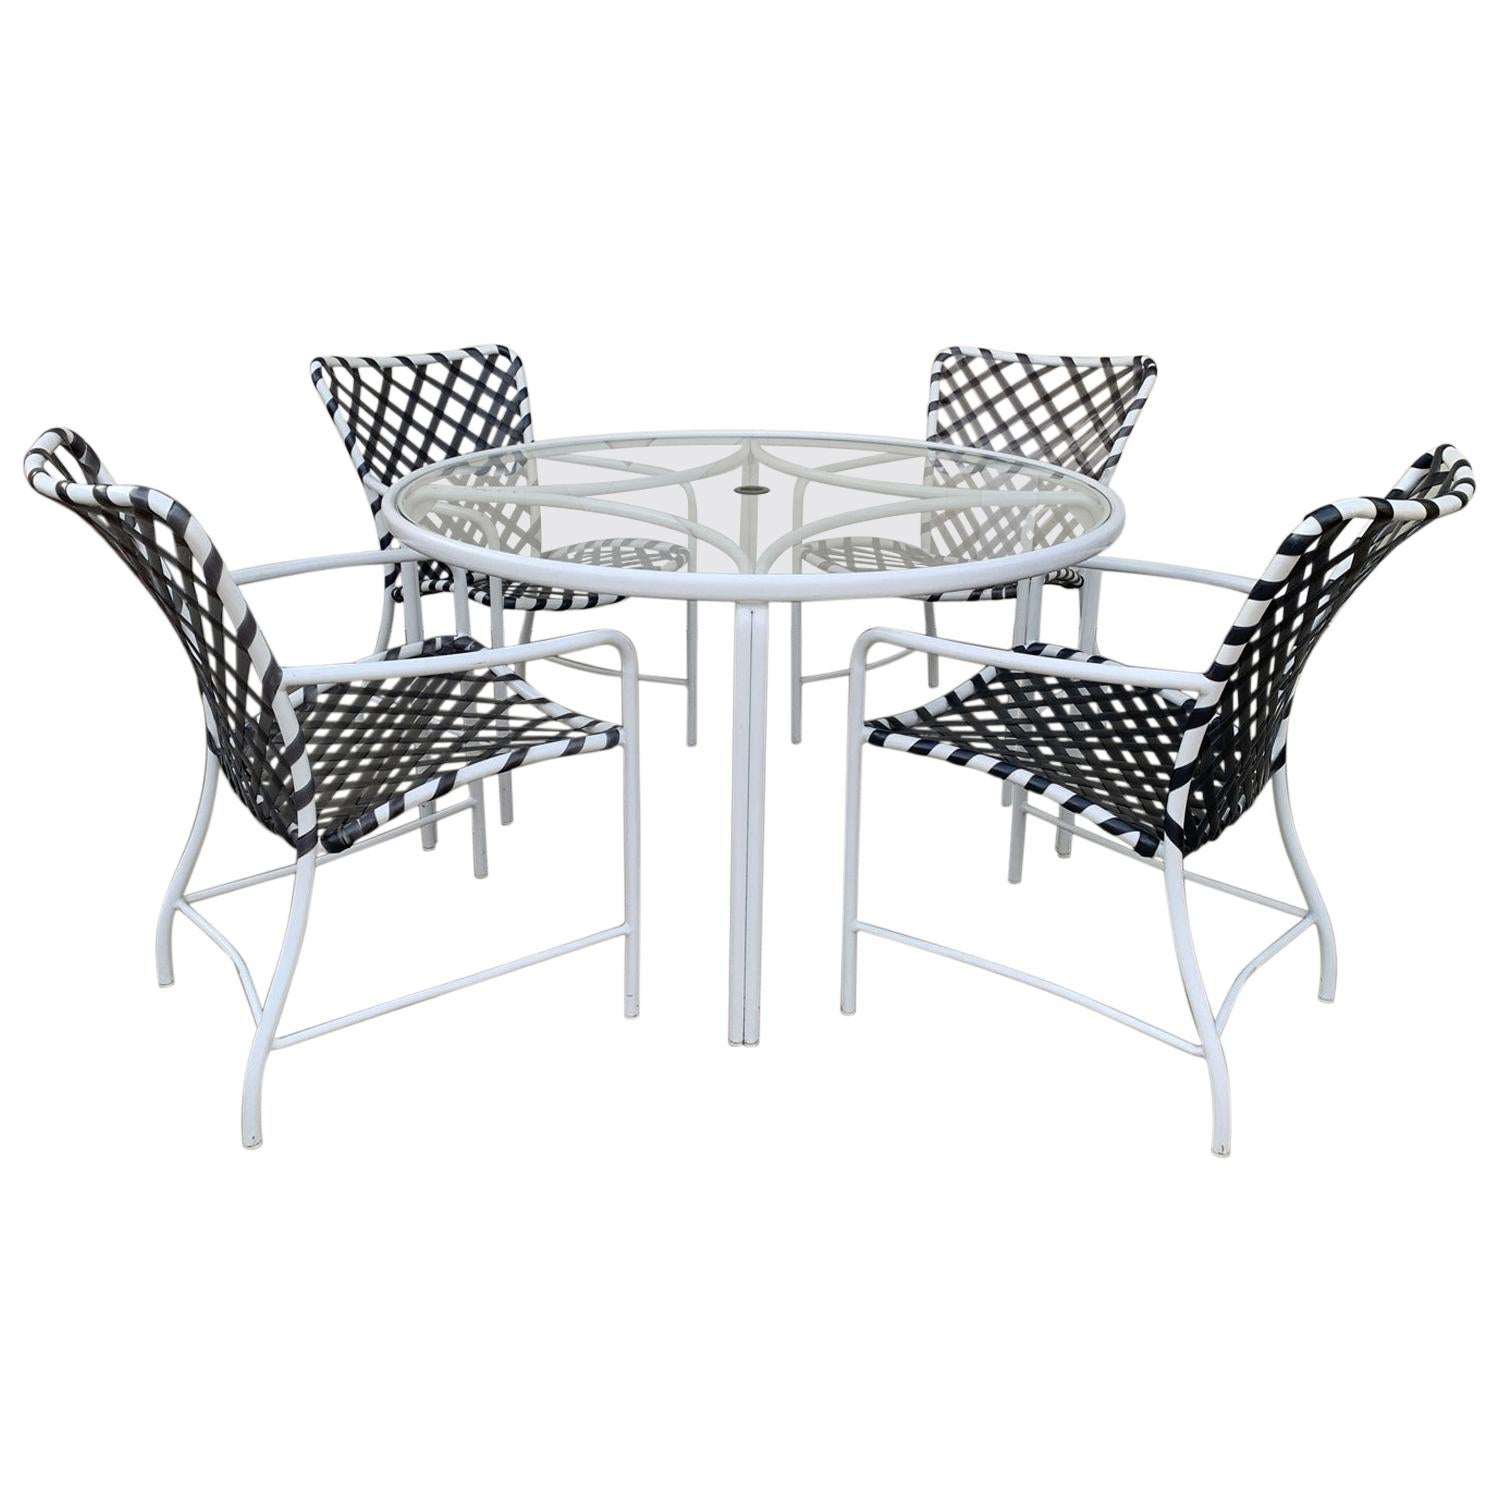 Vintage Brown Jordan Patio Set from the Tamiami Collection 1 Table and 4 Chairs